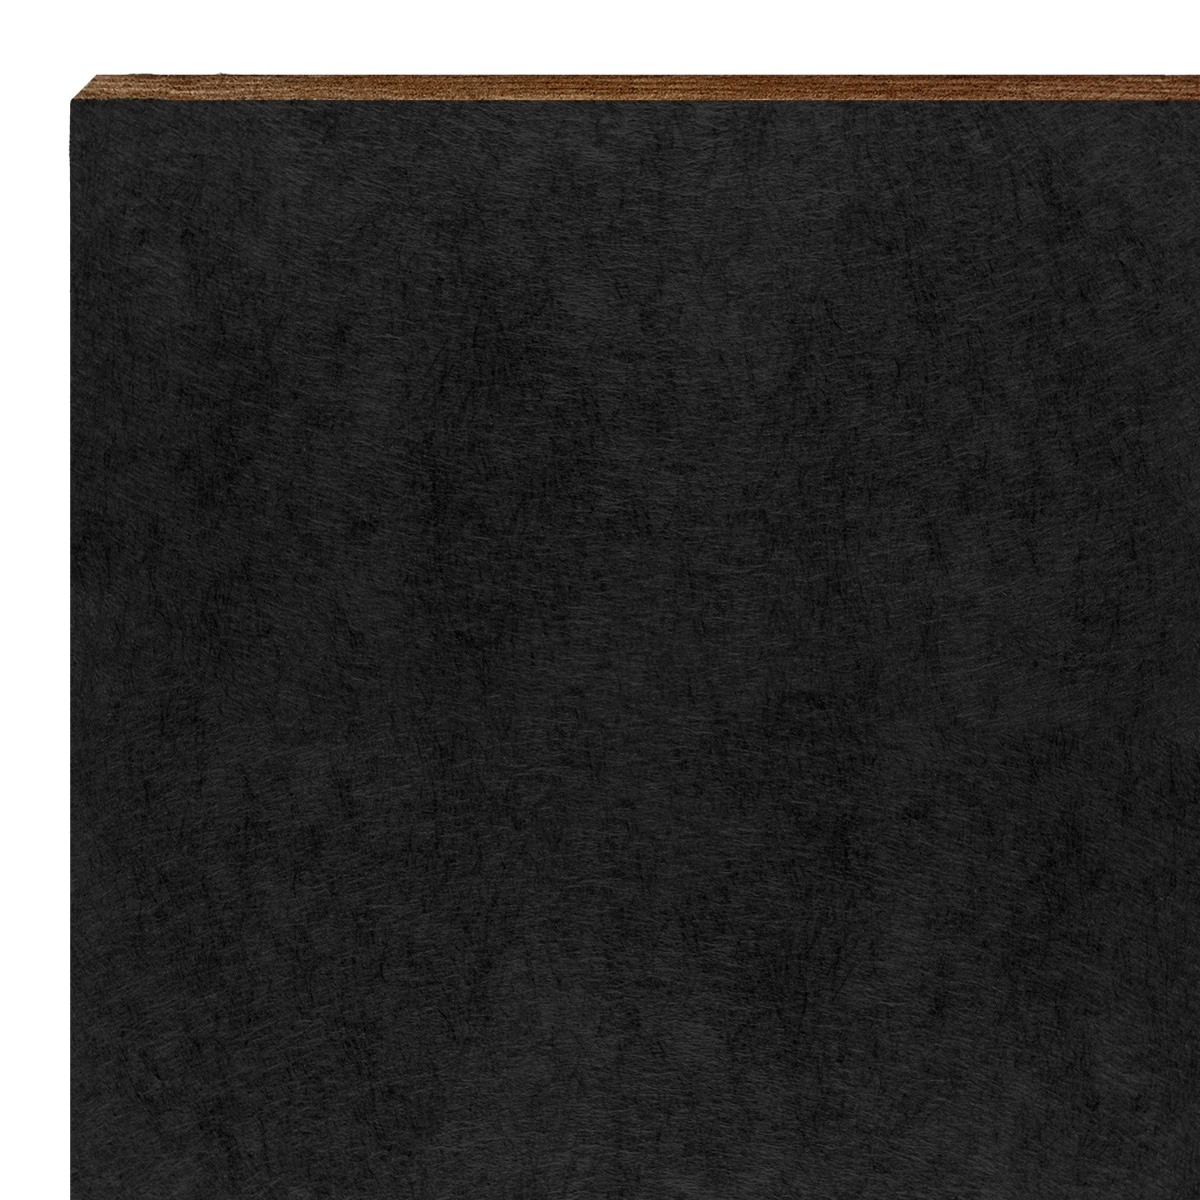 Alphamidnight Black Acoustic Ceiling Tile Acoustical